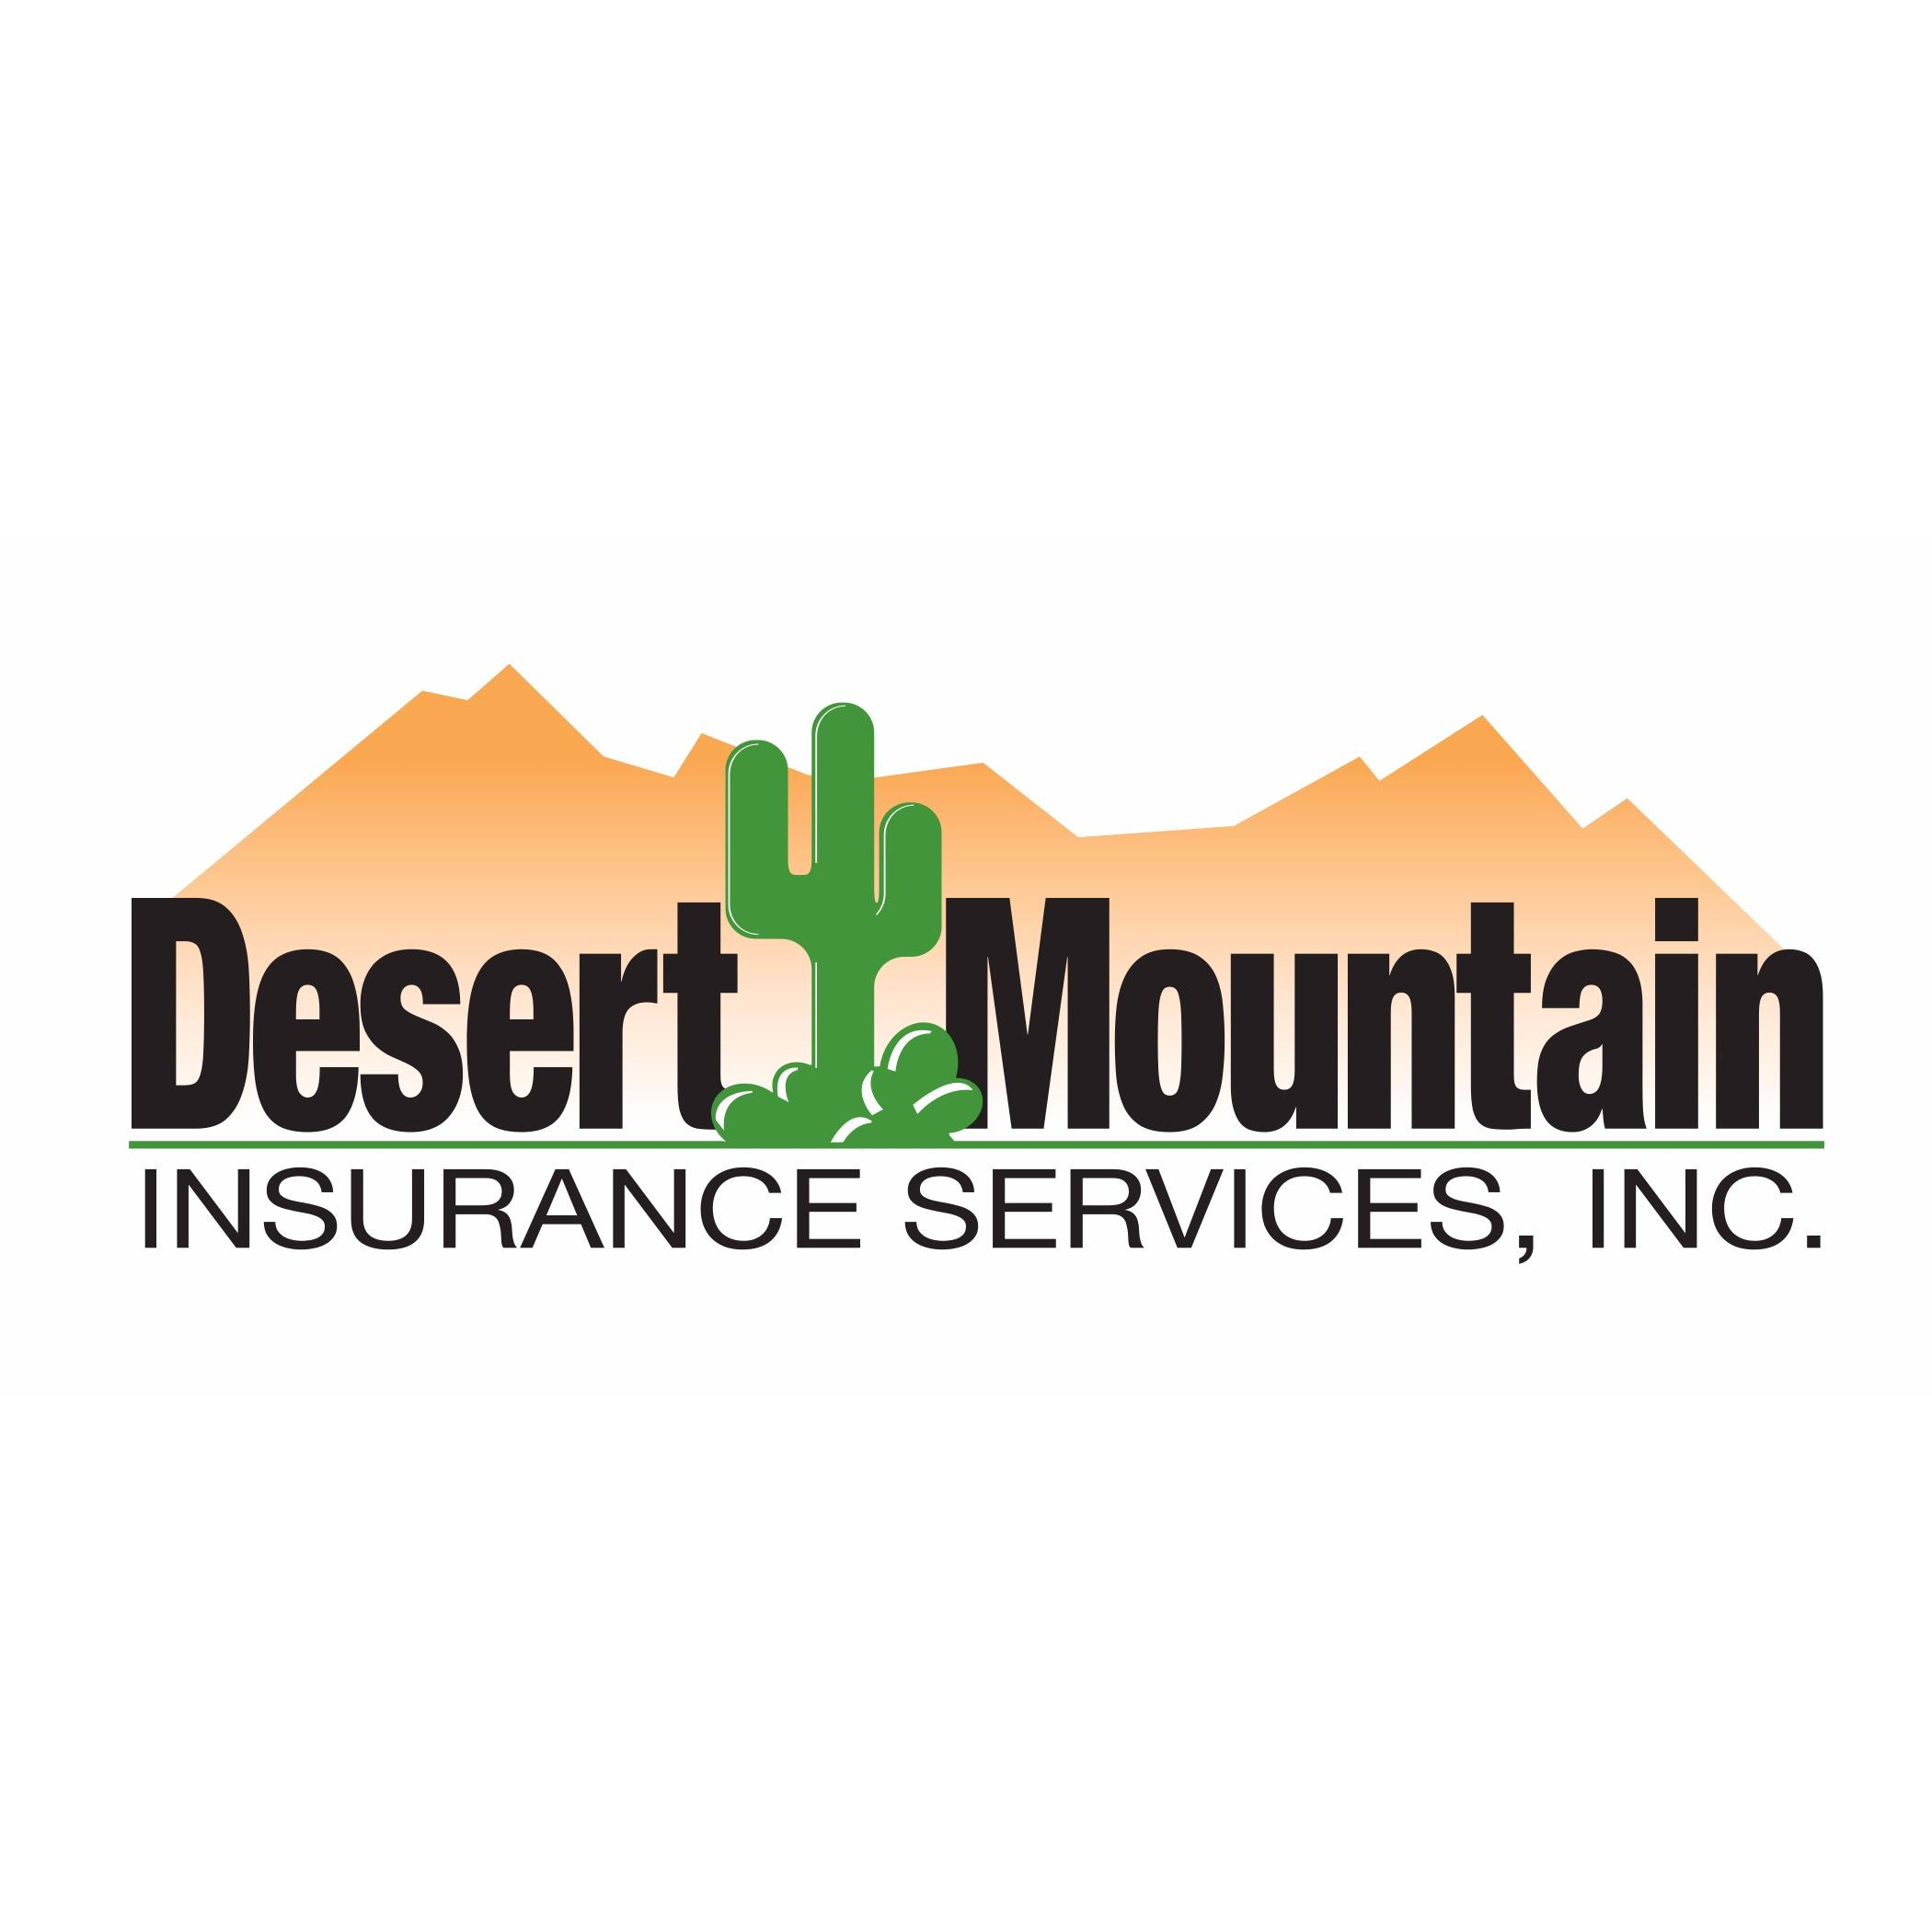 Desert Mountain Insurance Services